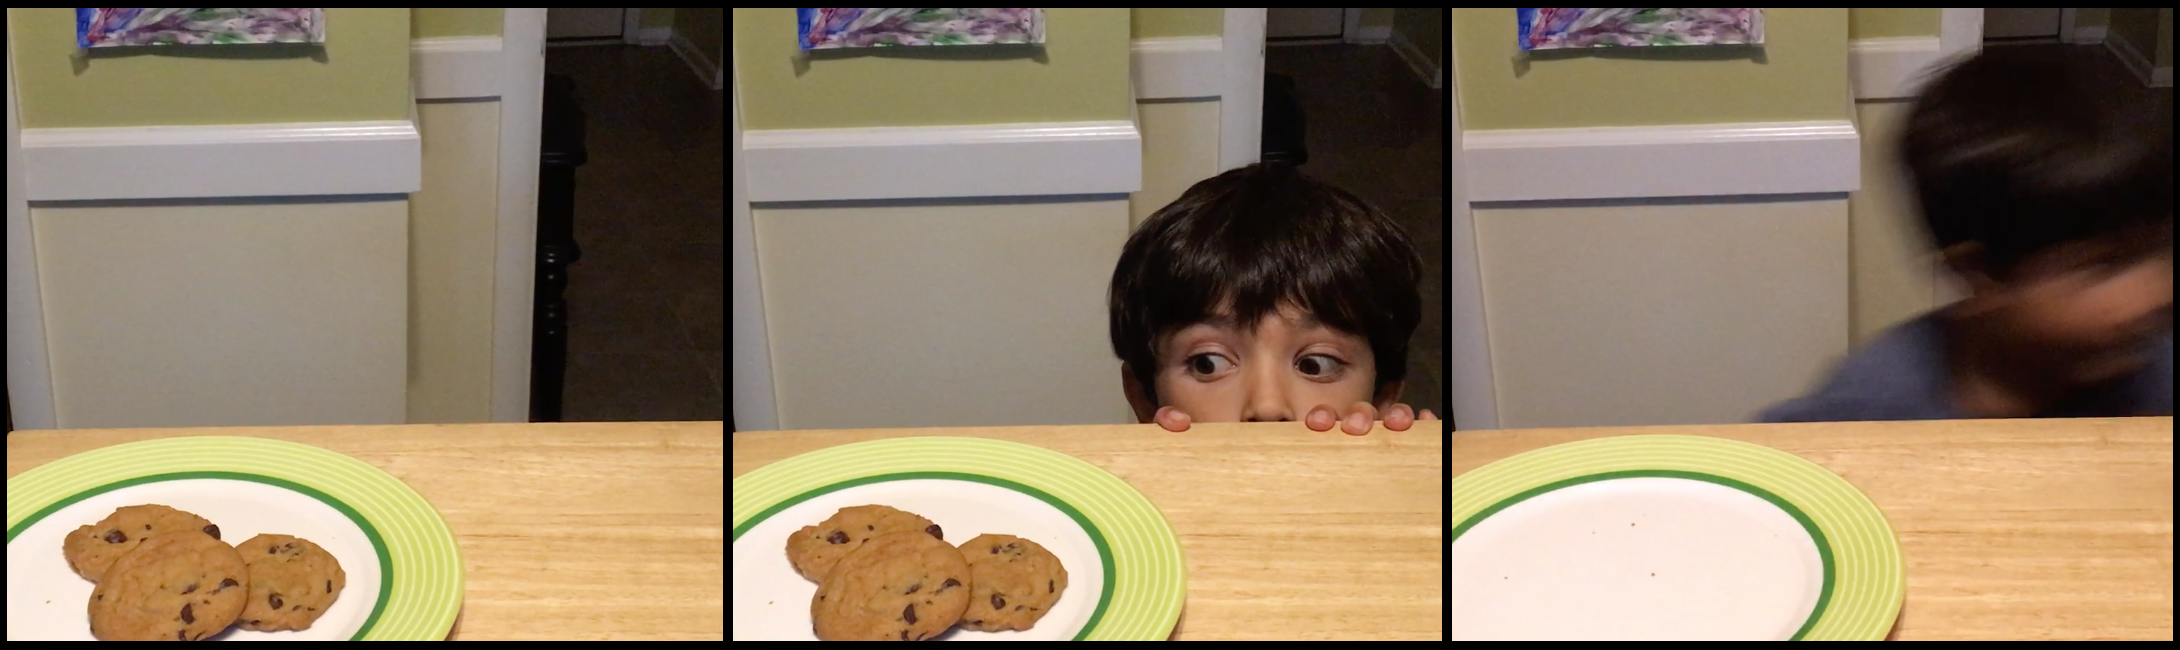 The Case of the Disappearing Cookies